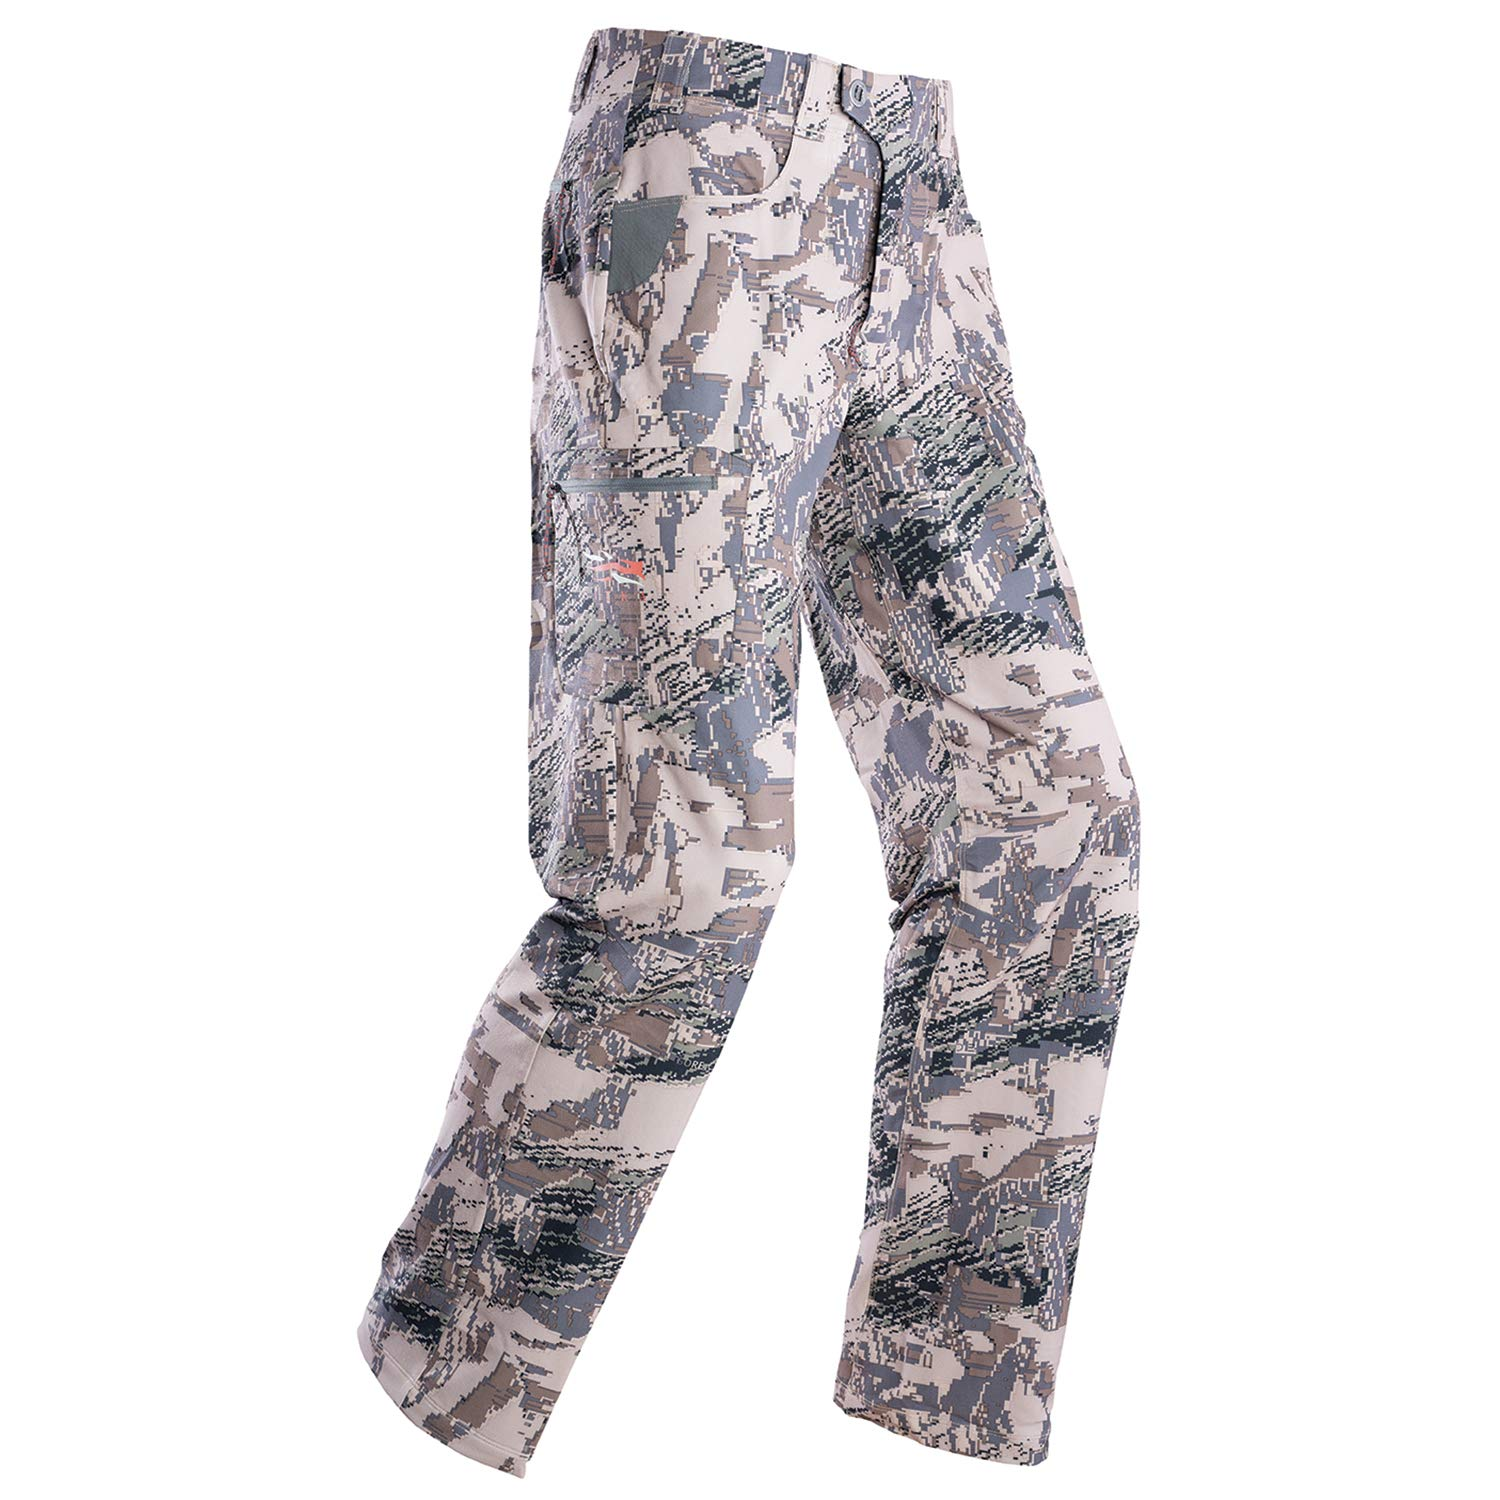 SITKA Gear New for 2019 Traverse Pant Optifade Open Country 31R